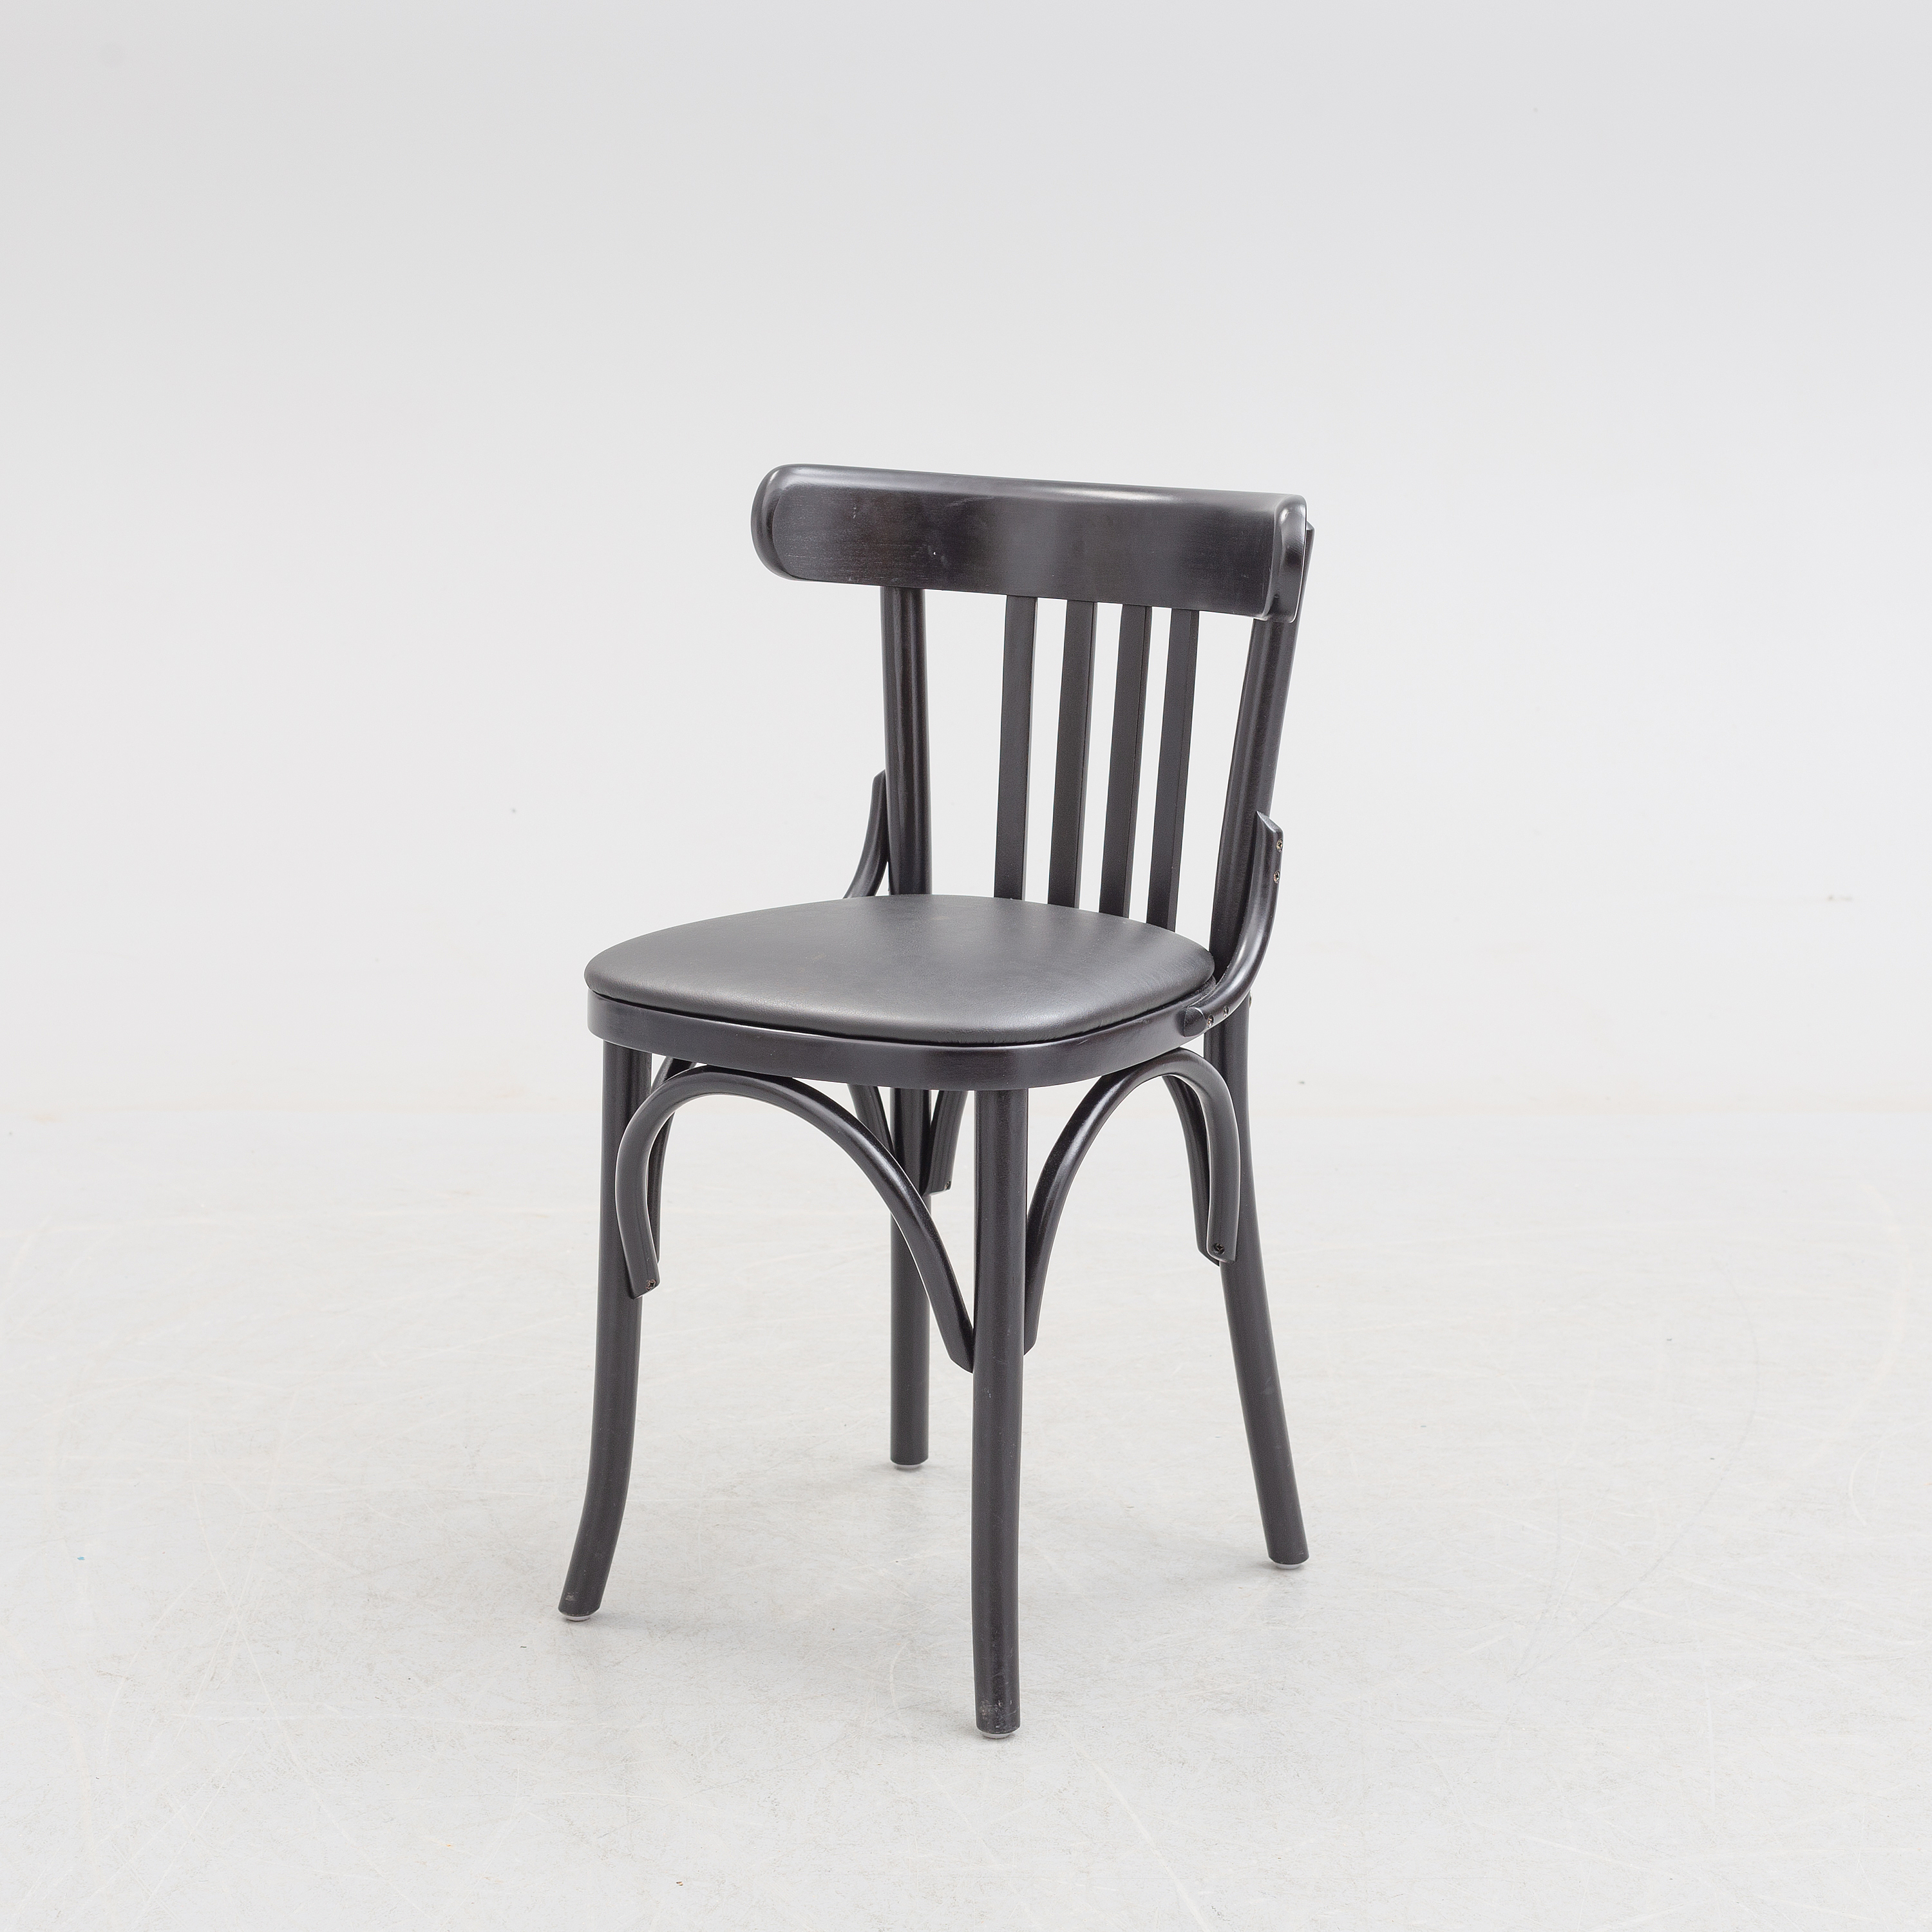 A Thonetstyle Chairs Efter Model 763 Sirca 2000